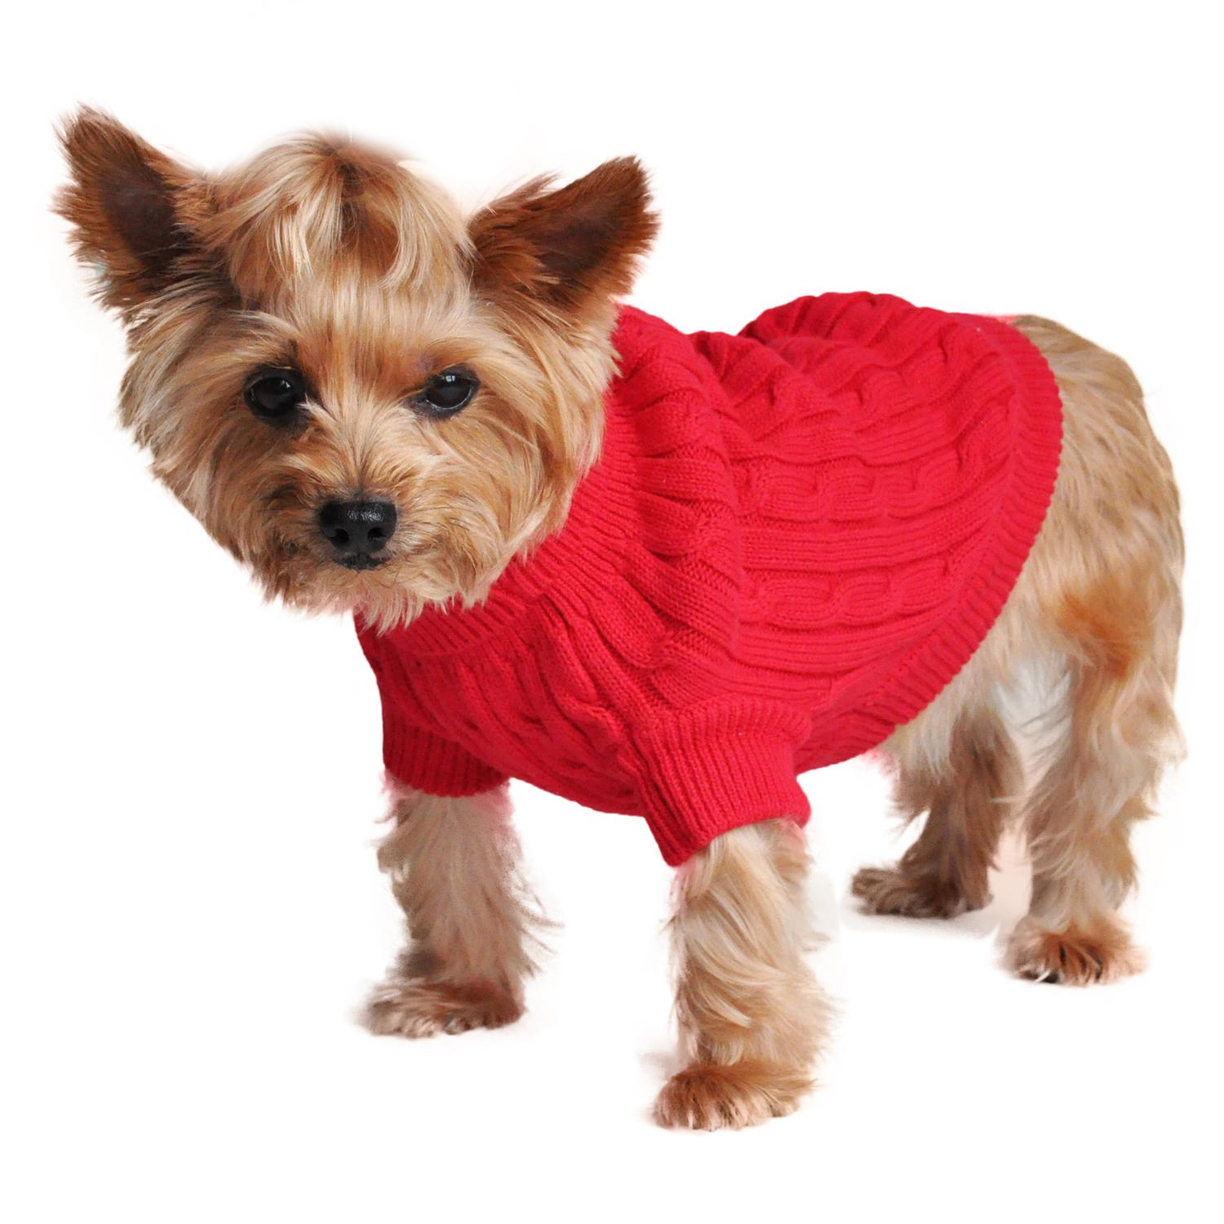 Cotton Cable Knit Dog Sweater Pattern Free Hypoallergenic Dog Sweater